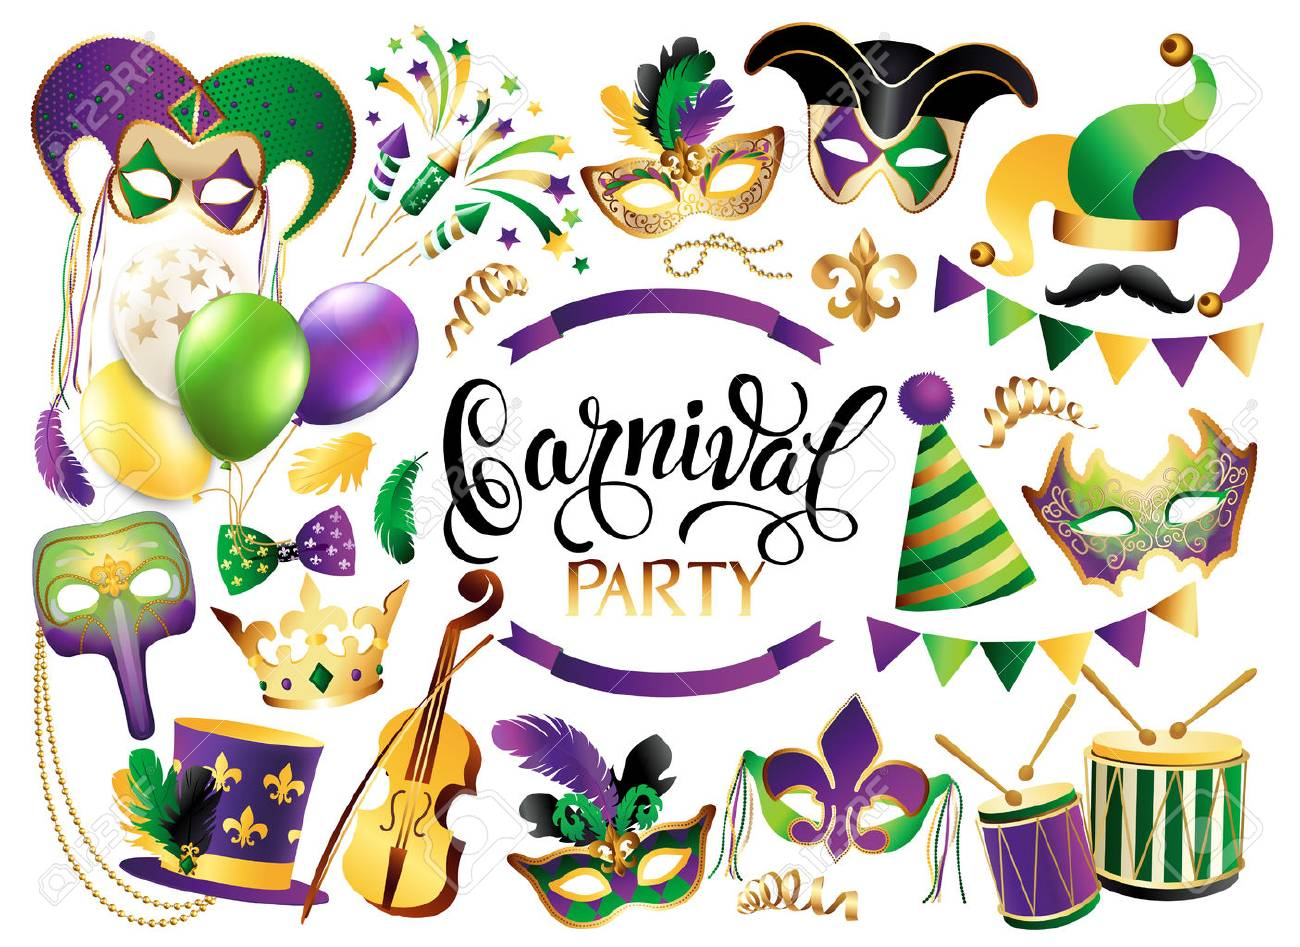 Mardi Gras French traditional symbols collection - carnival masks, party decorations. Vector illustration isolated on white background. - 90326128